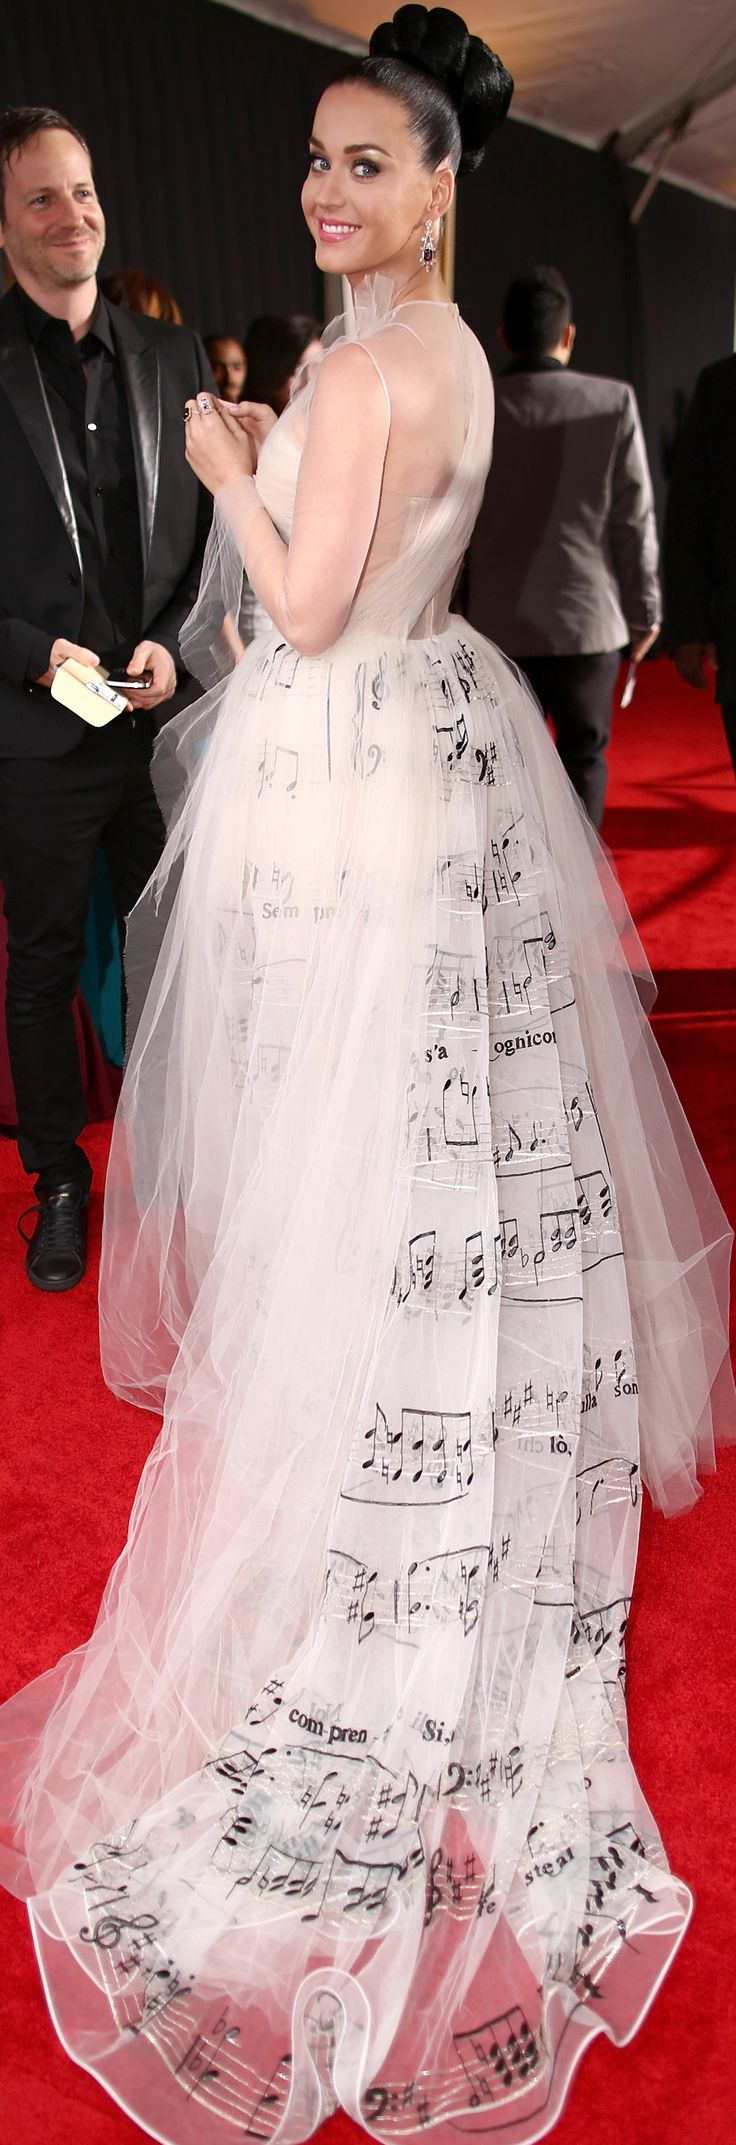 Katy Perry in a musical Valentino Couture gown at the Grammy Awards. Love, love, LOVE!!! She's my guilty pleasure, no shame.